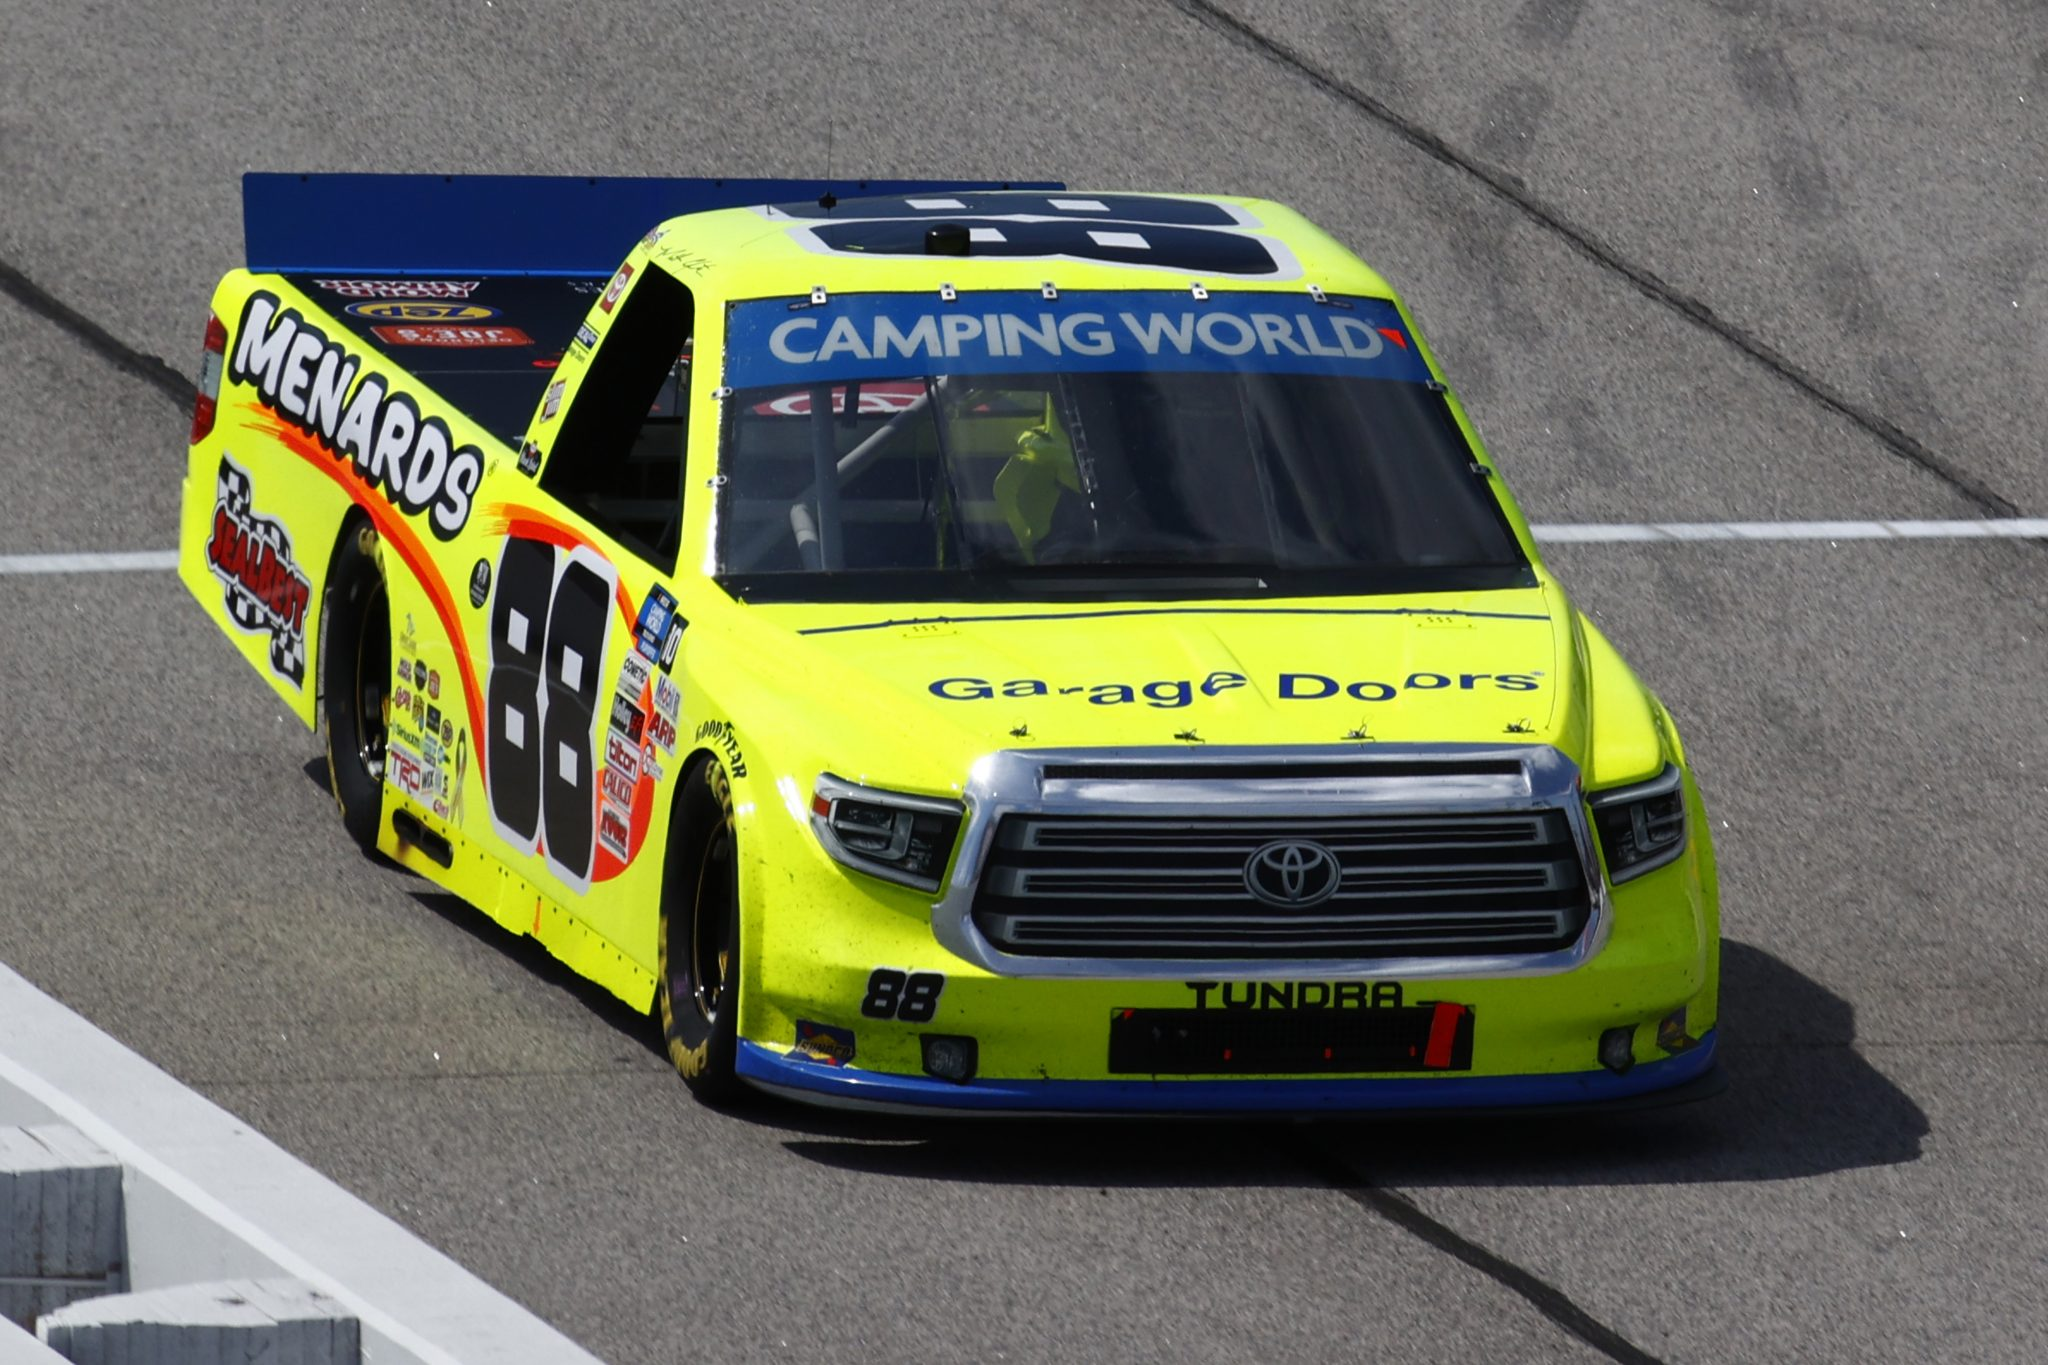 DARLINGTON, SOUTH CAROLINA - SEPTEMBER 05: Matt Crafton, driver of the #88 Ideal Door/Menards Toyota, drives down pit road during the NASCAR Camping World Truck Series In It To Win It 200 at Darlington Raceway on September 05, 2021 in Darlington, South Carolina. (Photo by Jared C. Tilton/Getty Images)   Getty Images